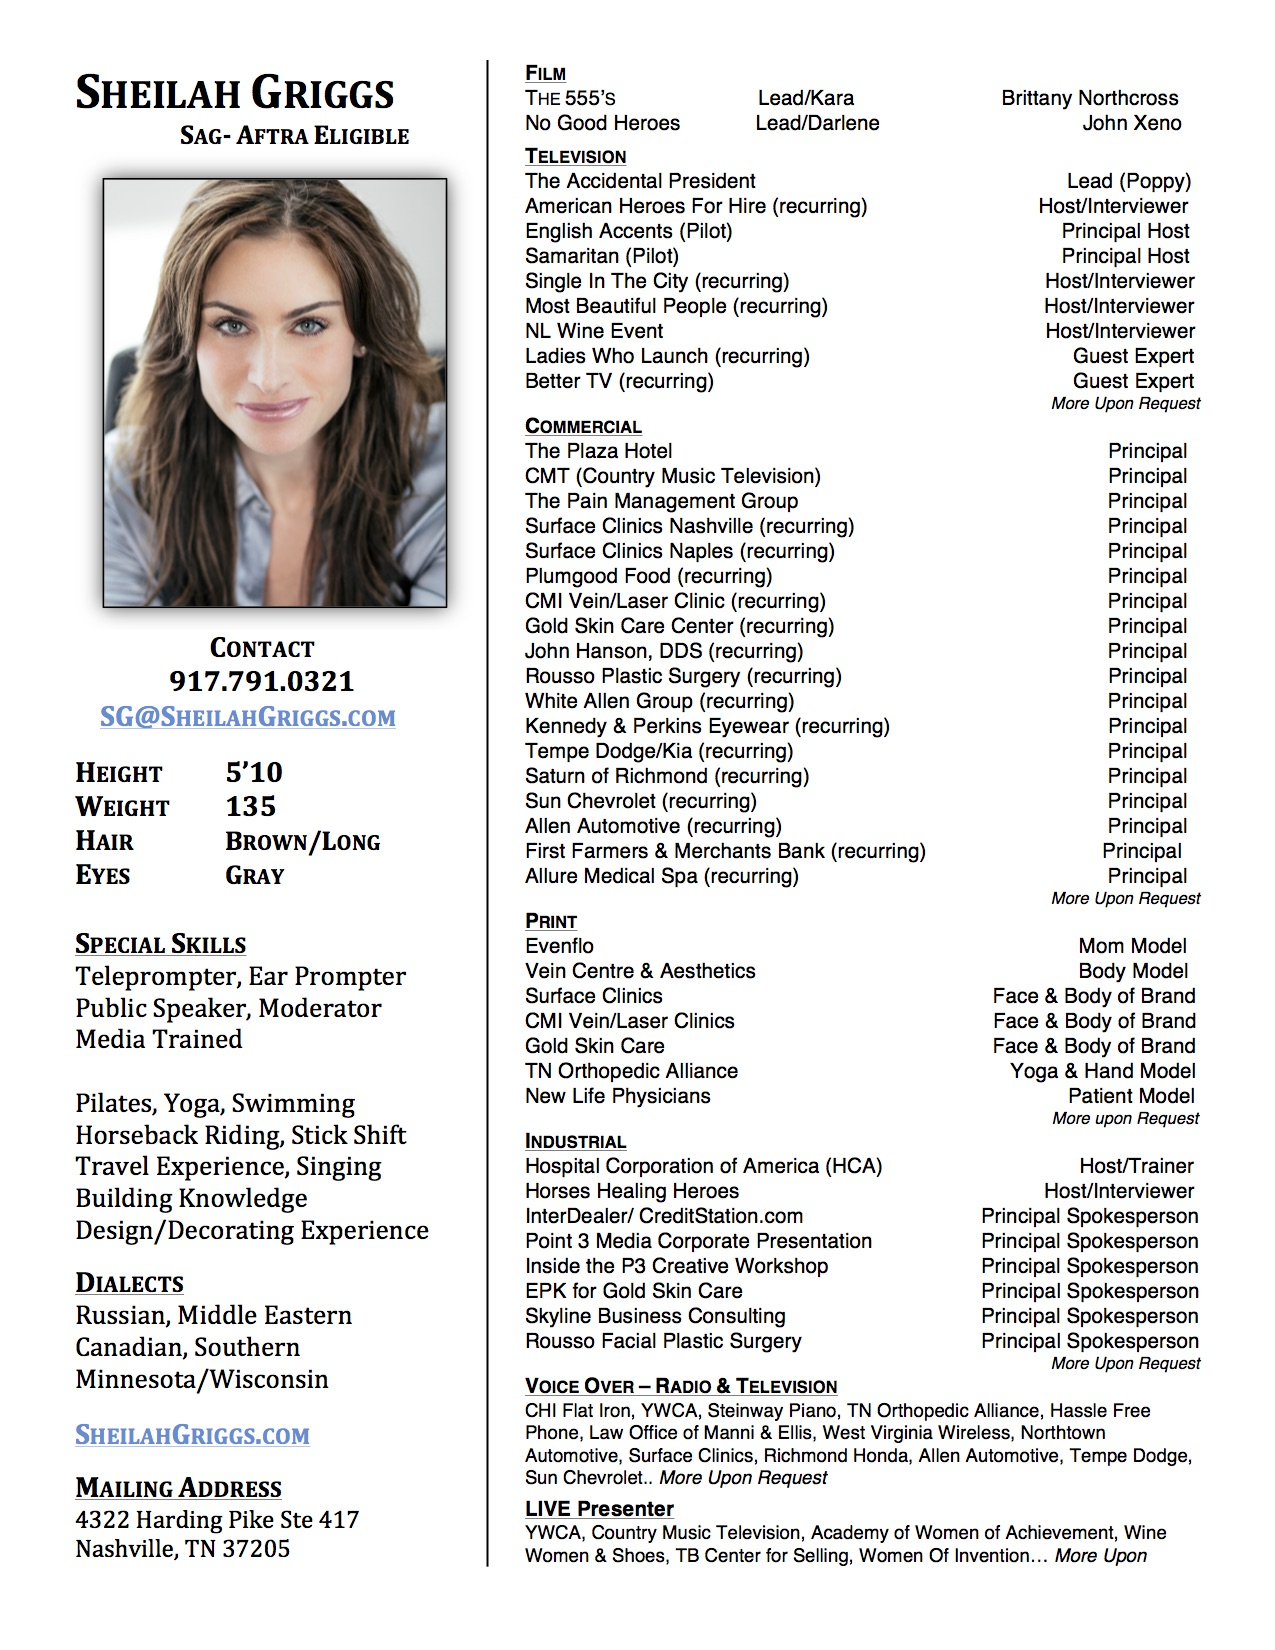 Talent Resume Sheilah Griggs